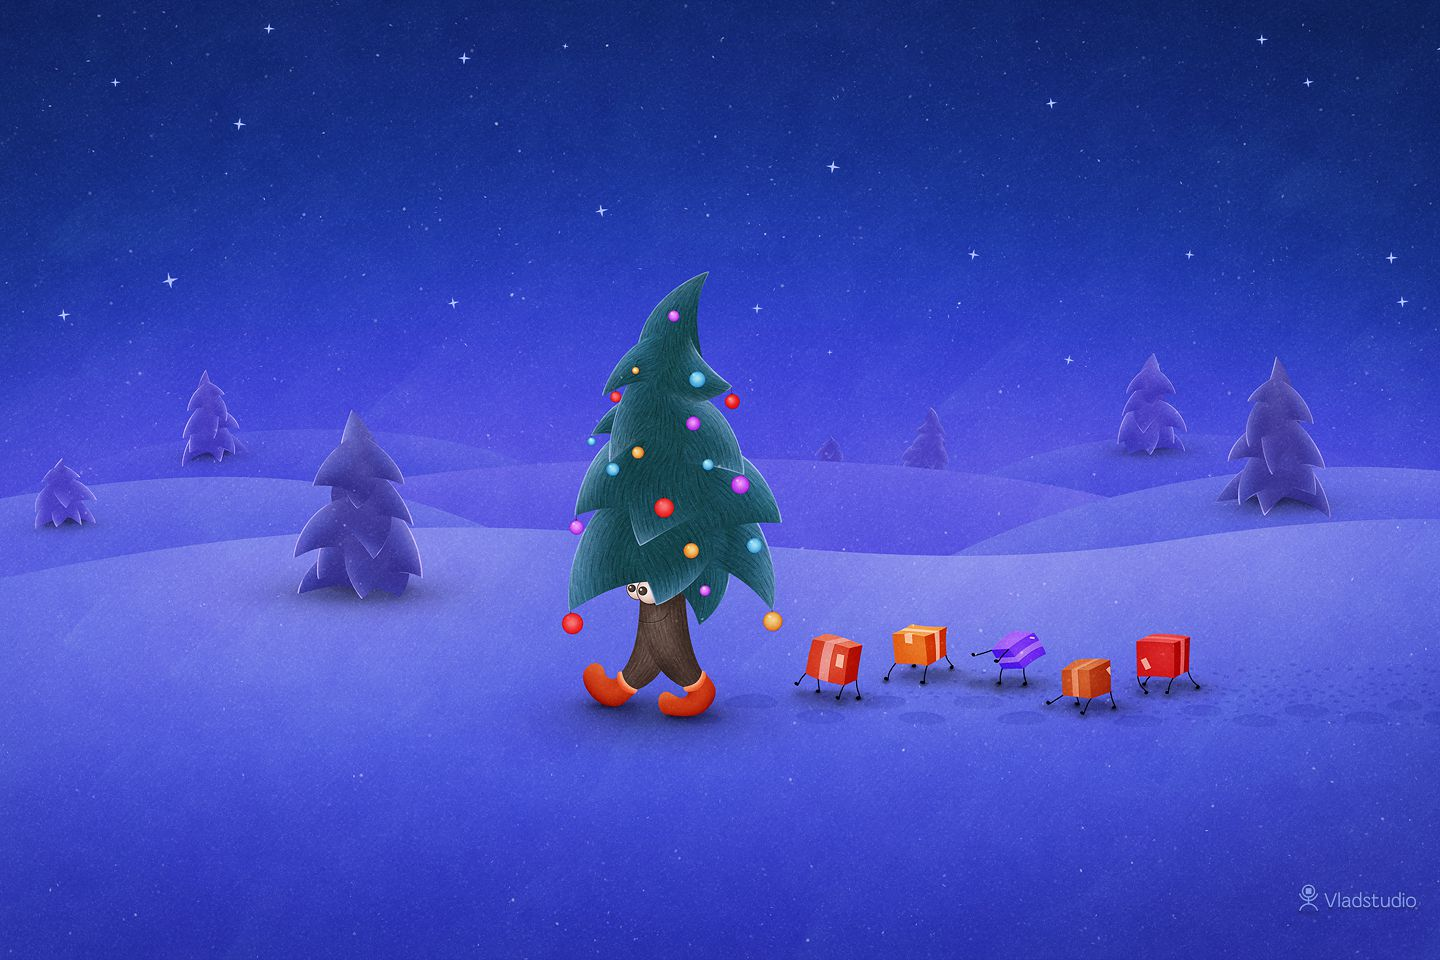 Christmas Desktop Wallpaper For Mac Windows And Linux